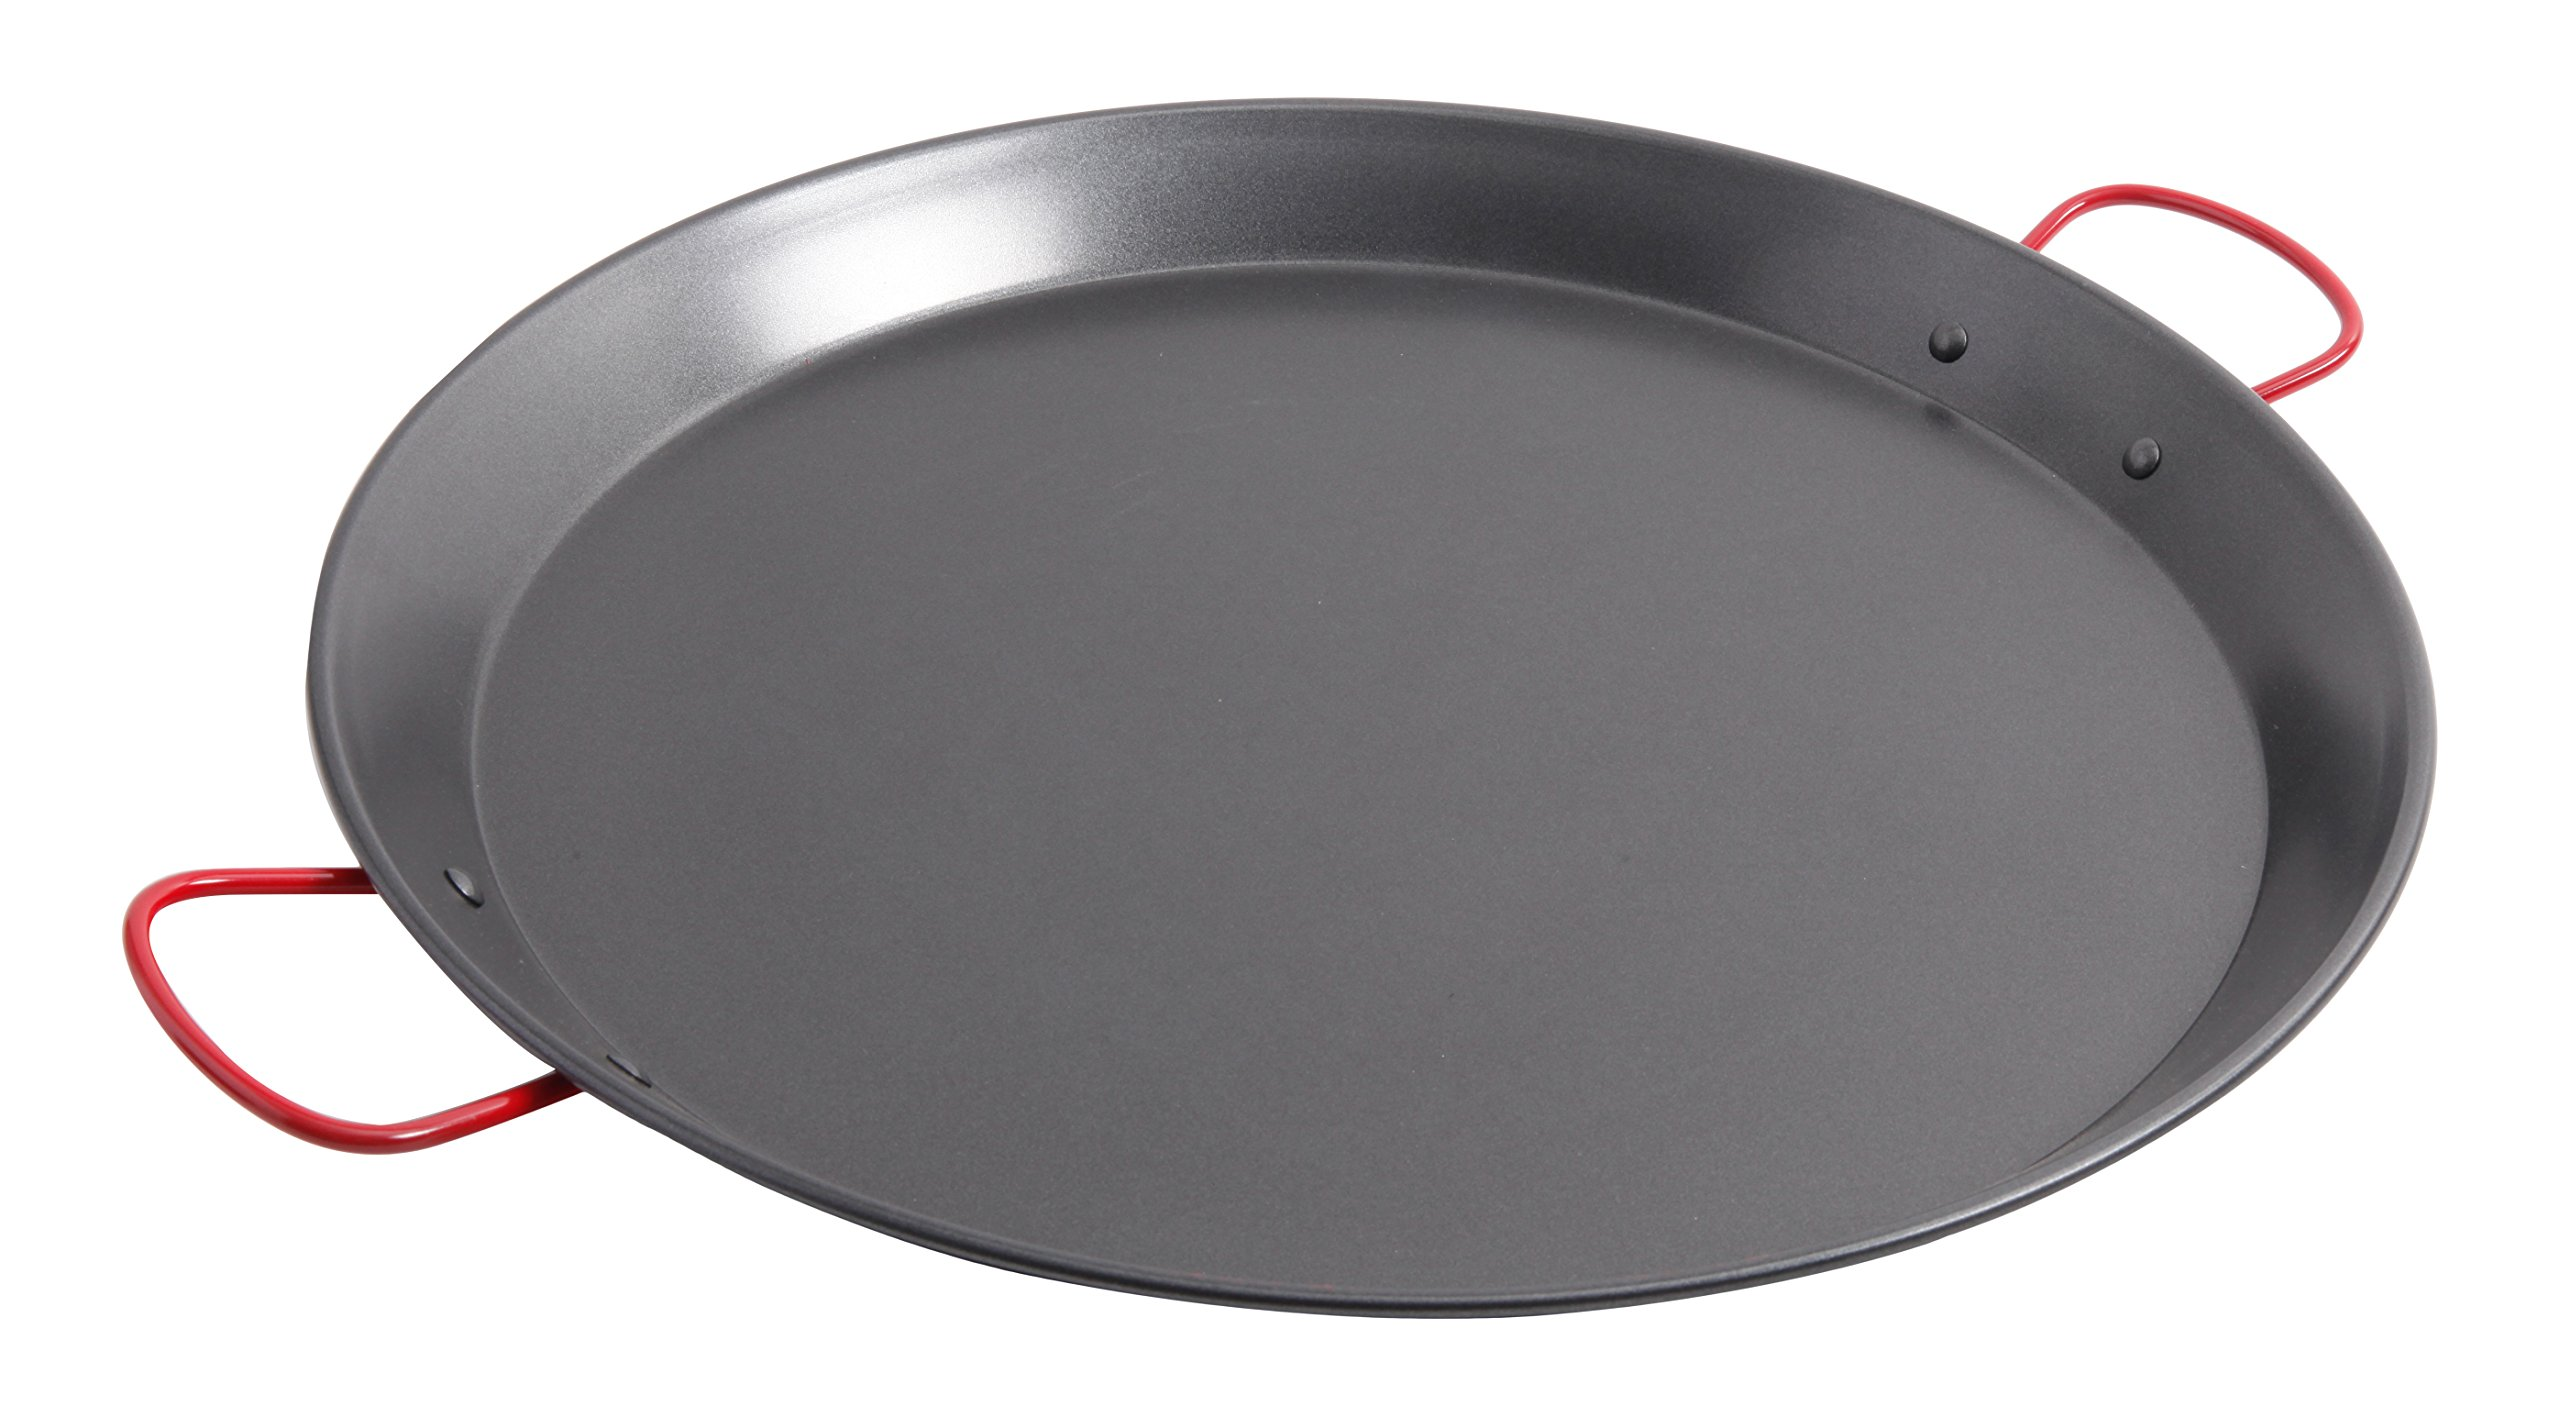 Oster Cocina 111894.01 Corrales Paella Round Carbon Steel Pan with Stainless Steel Handles, Red